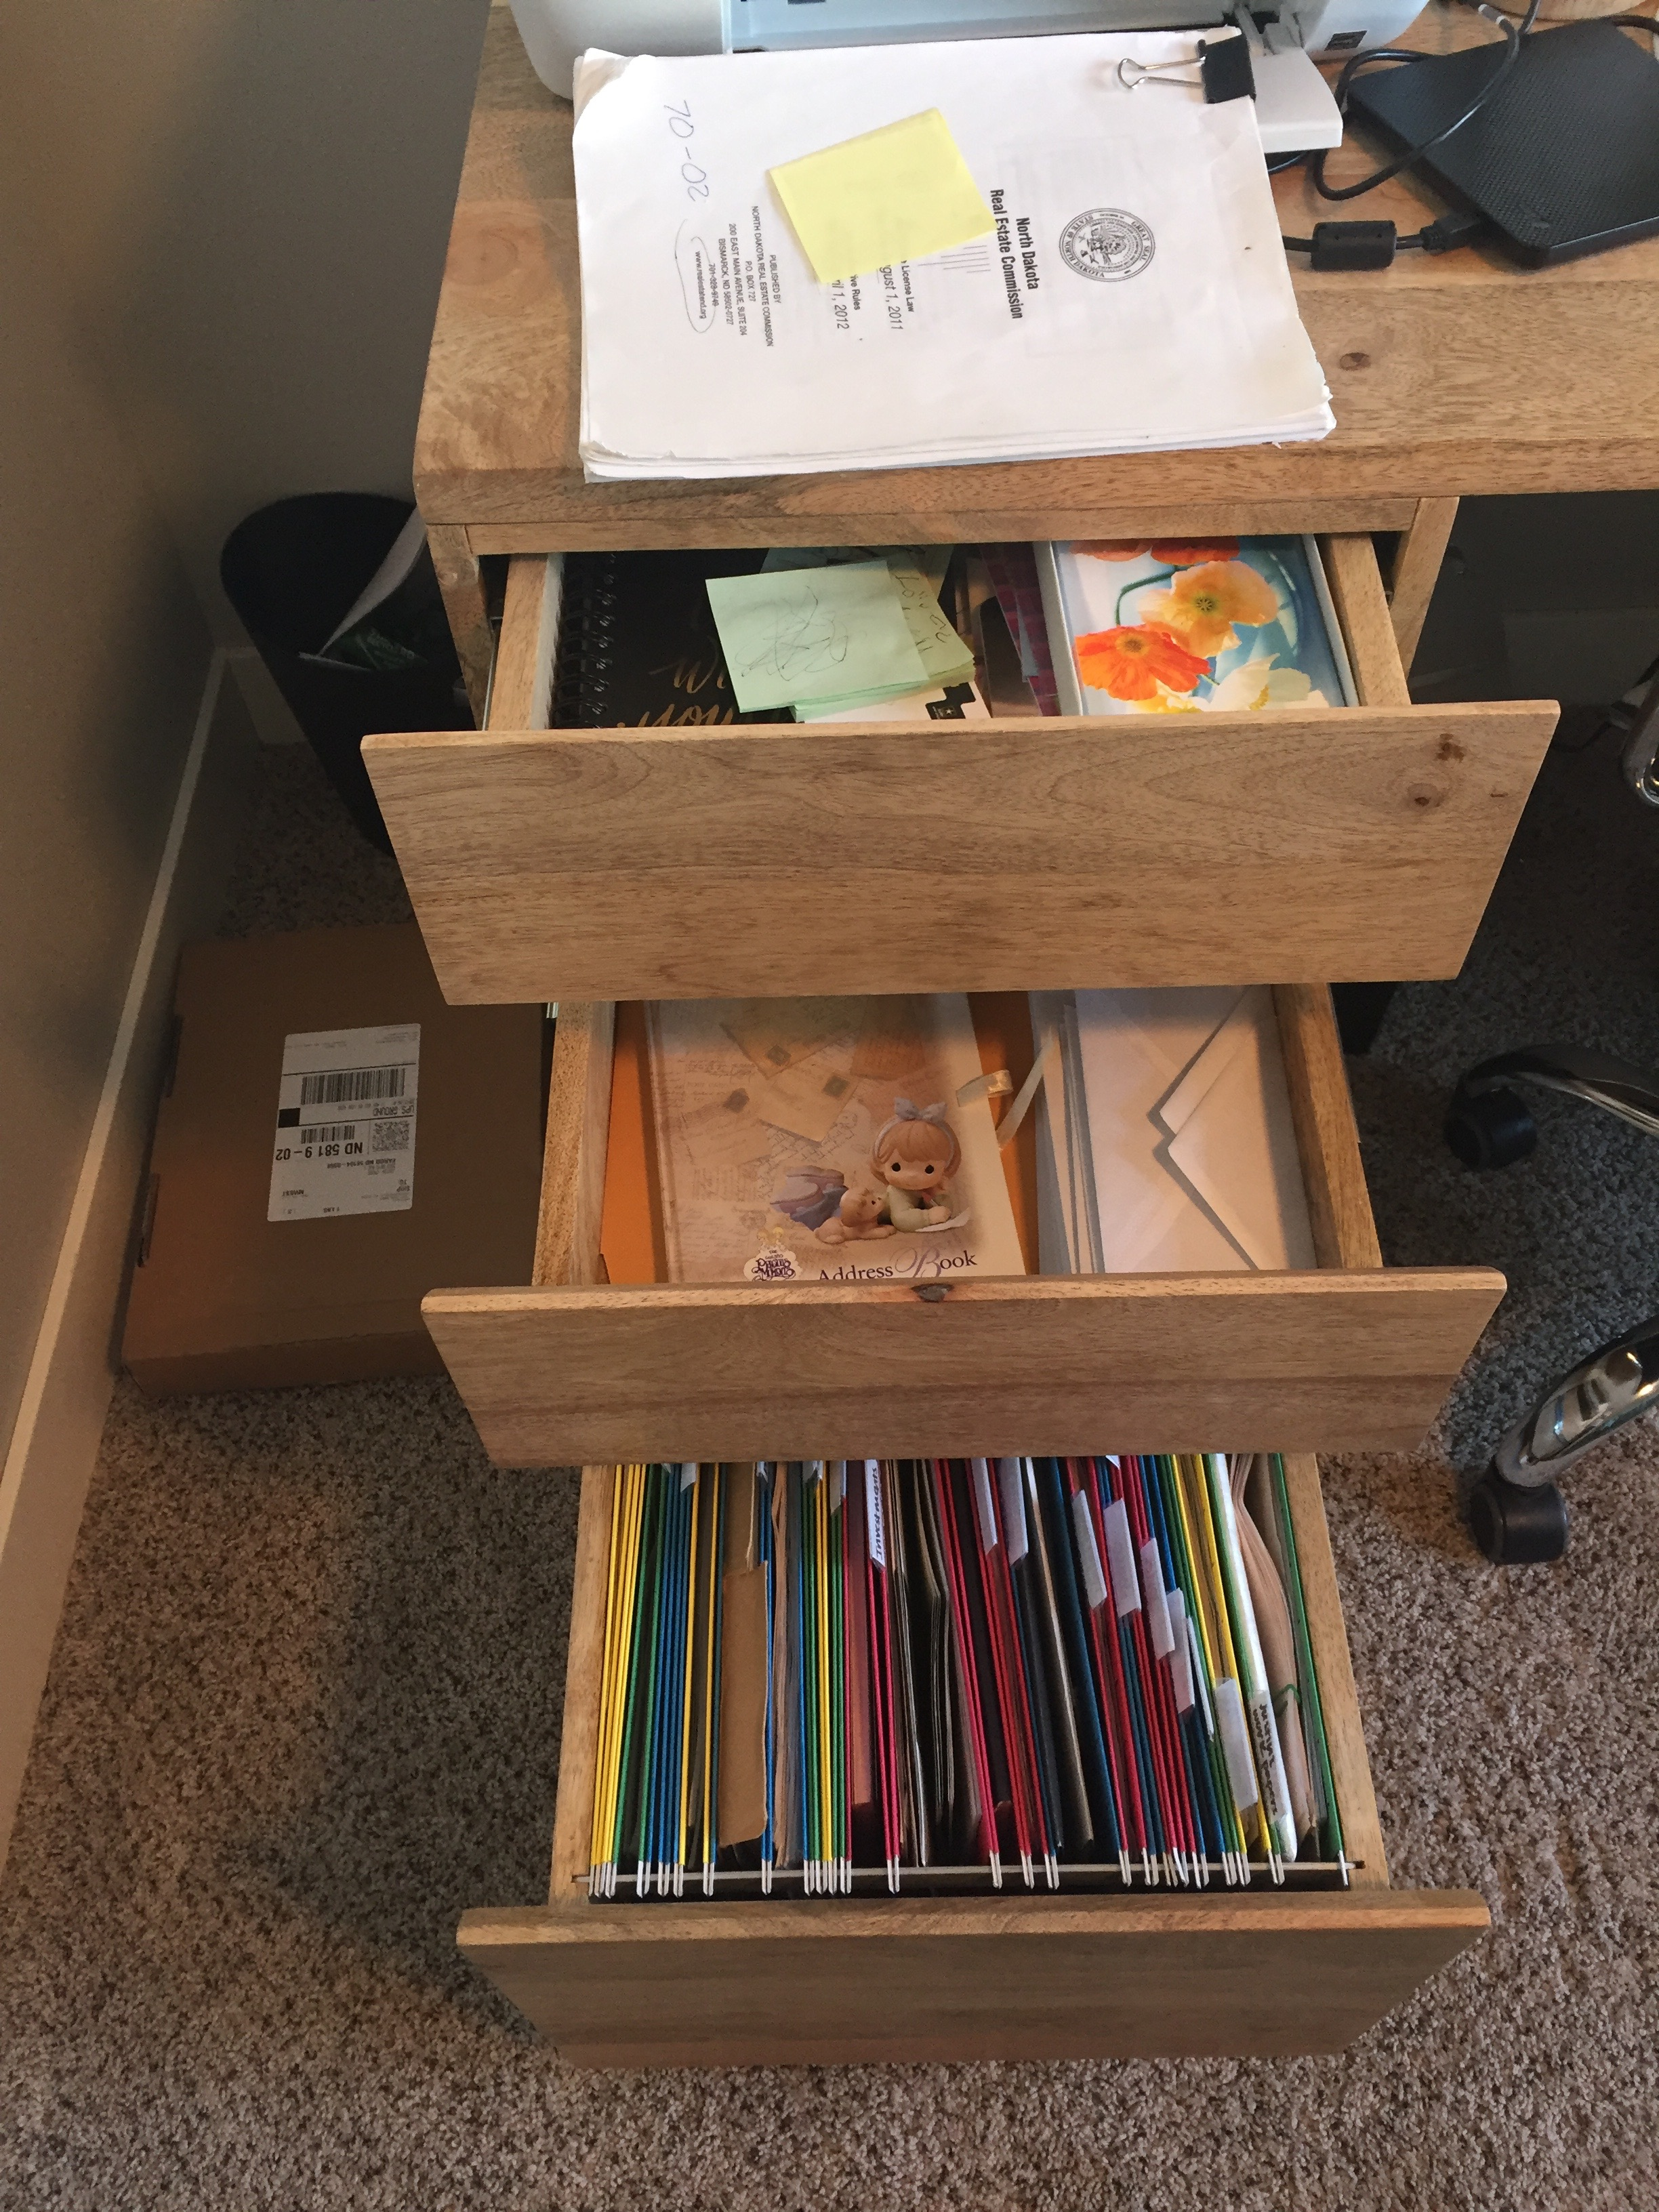 BEFORE - This client felt overwhelmed by drawers bursting at the seams with papers.